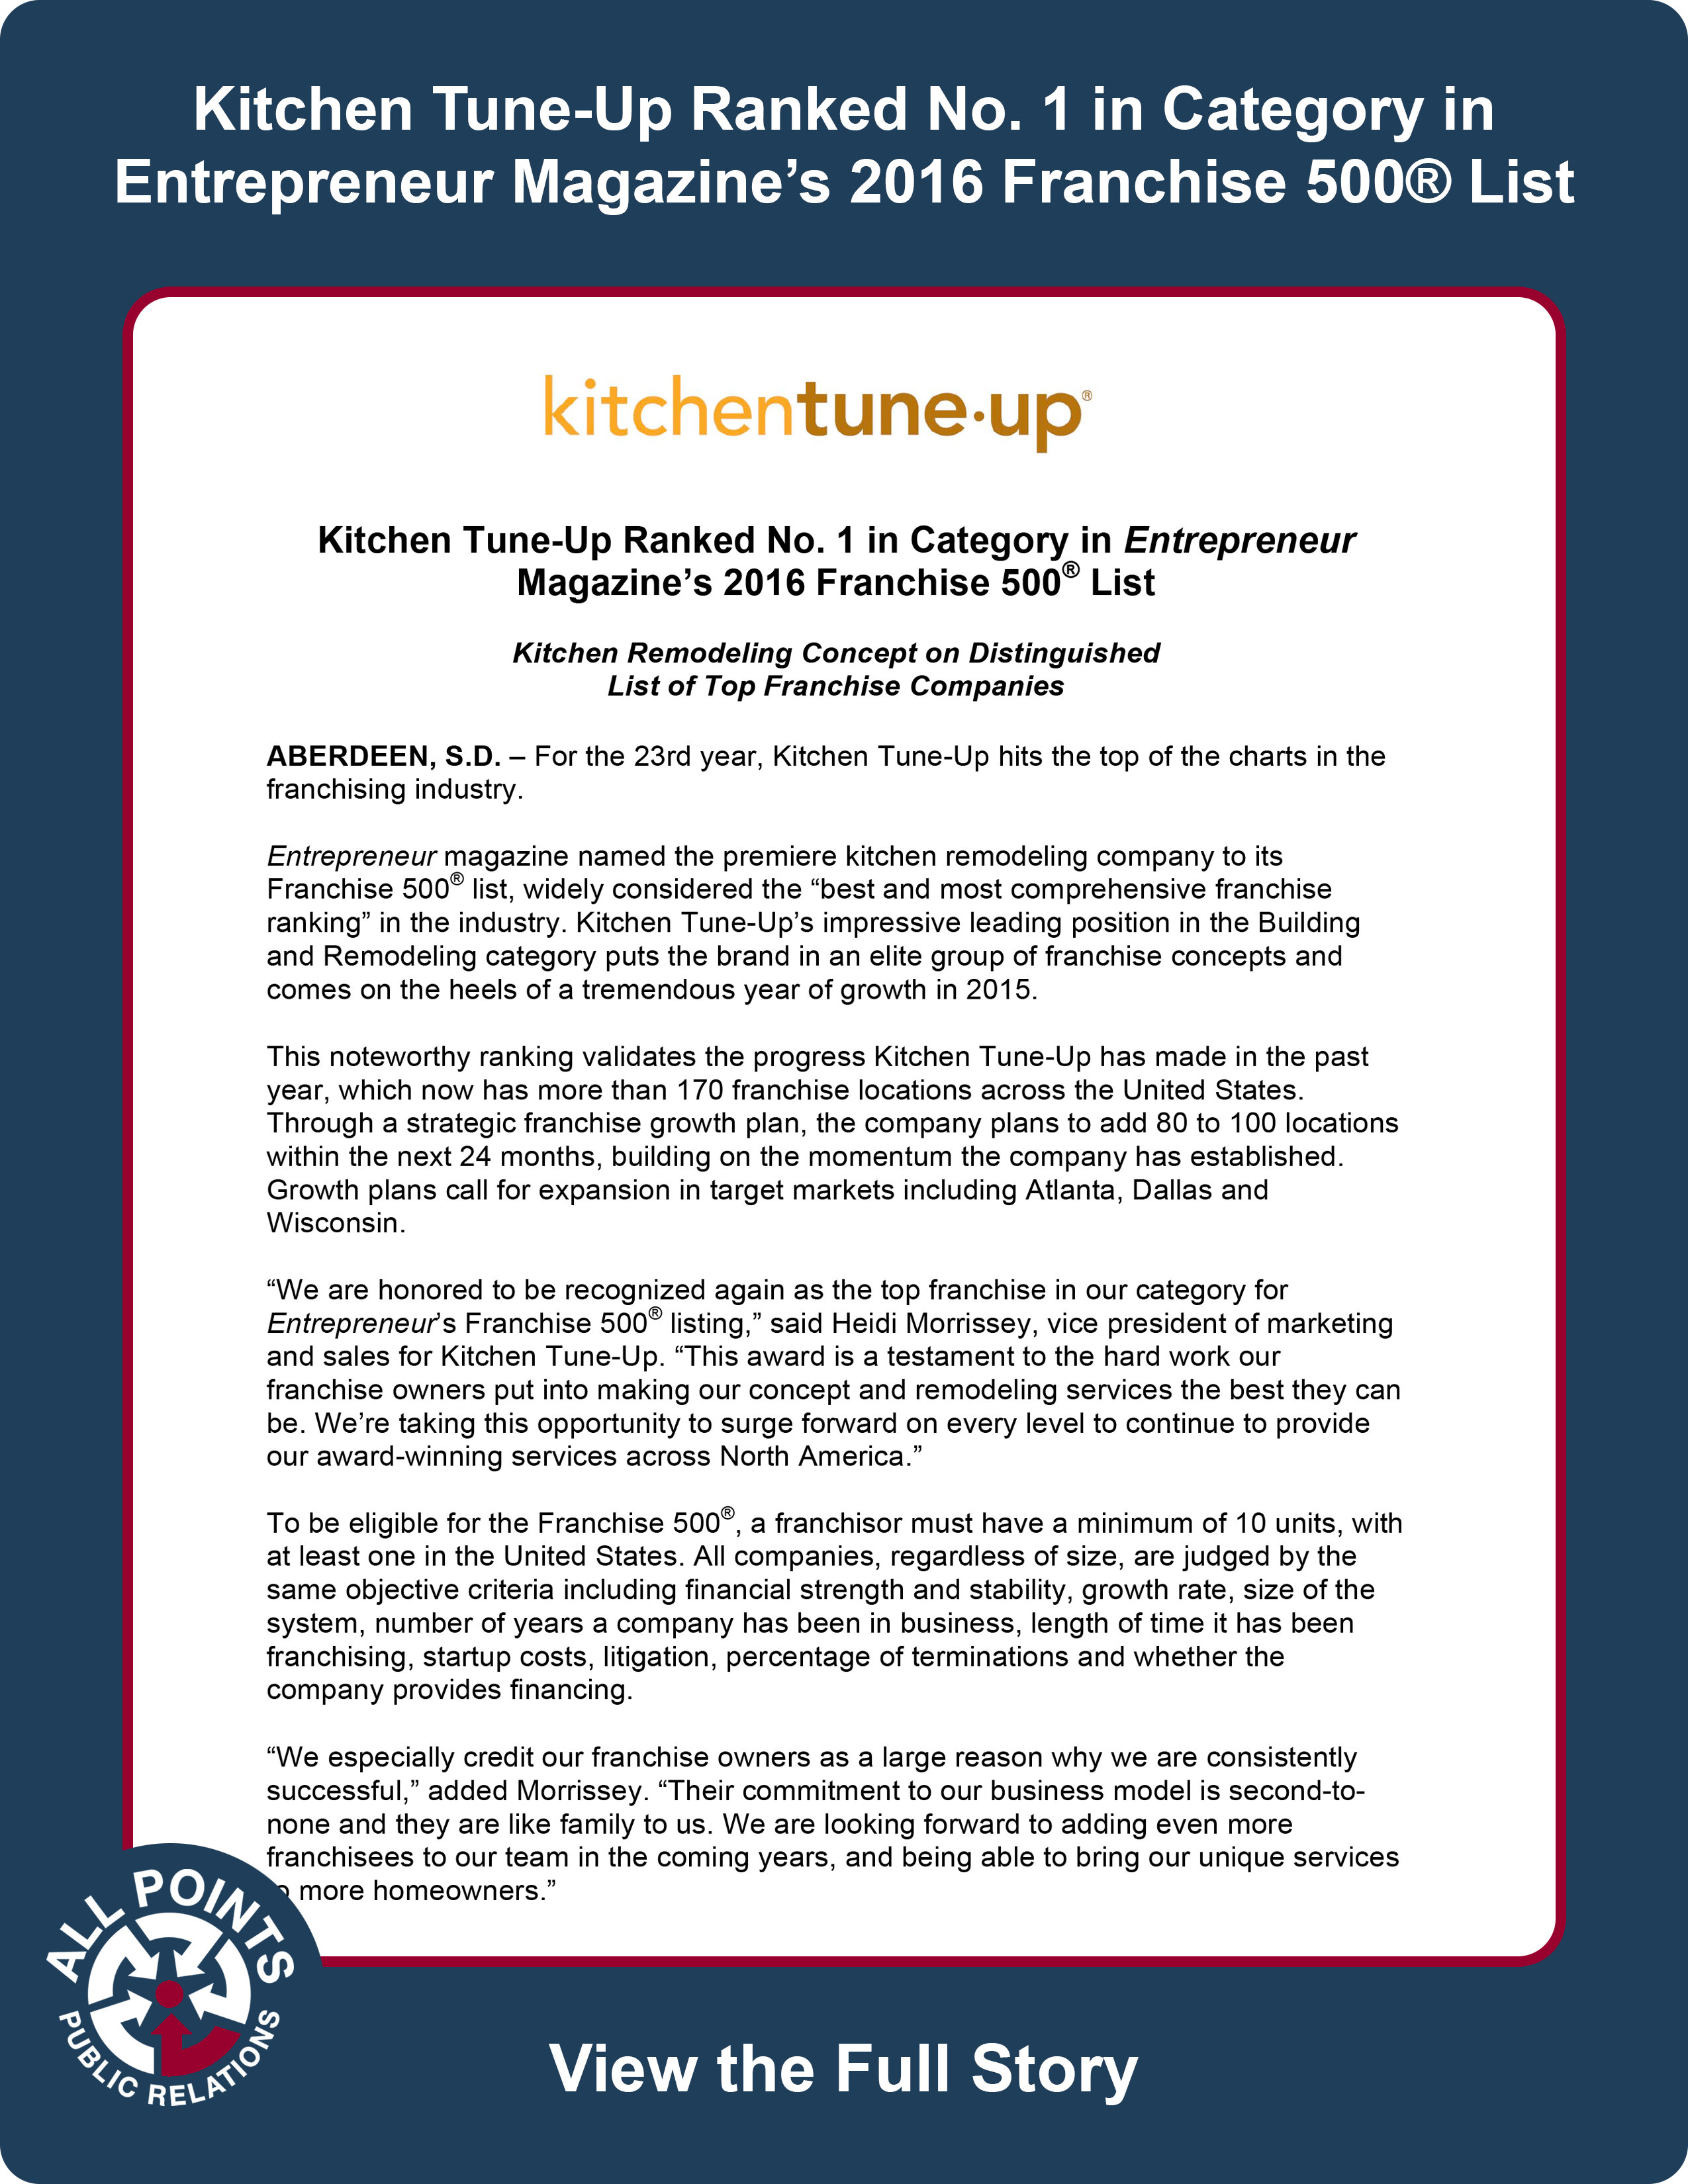 Kitchen Tune-Up | All Points Public Relations